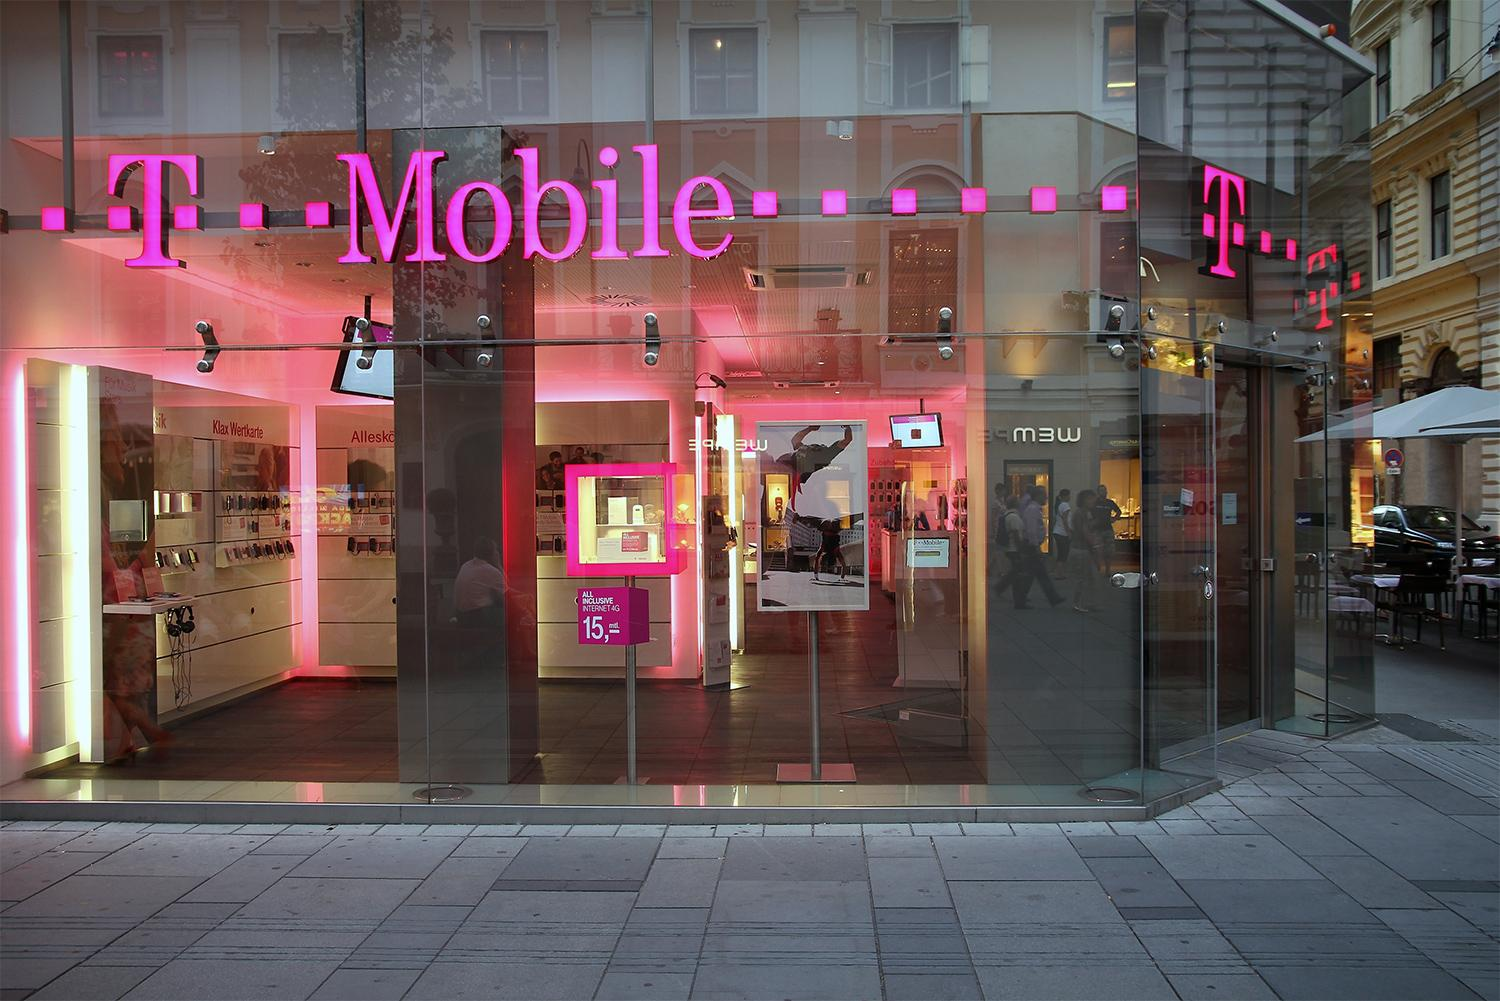 Mobile offering a free line of service beginning in March